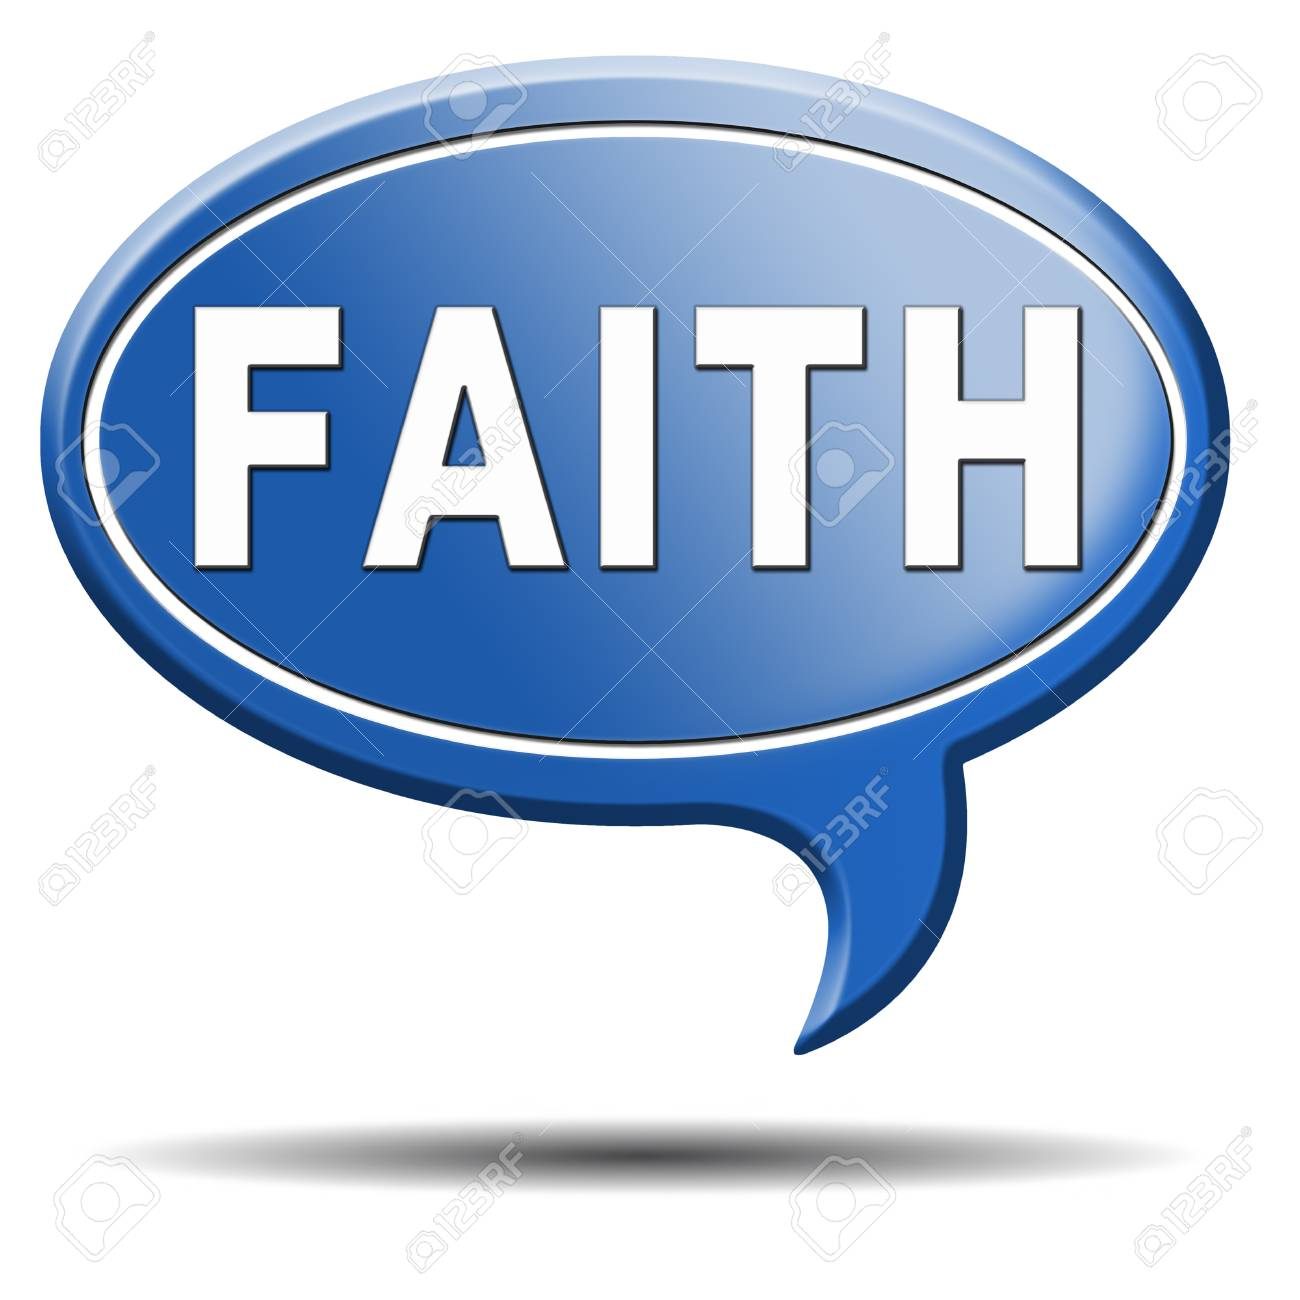 faith trust and belief in god jesus christ and friends Stock Photo - 23236933